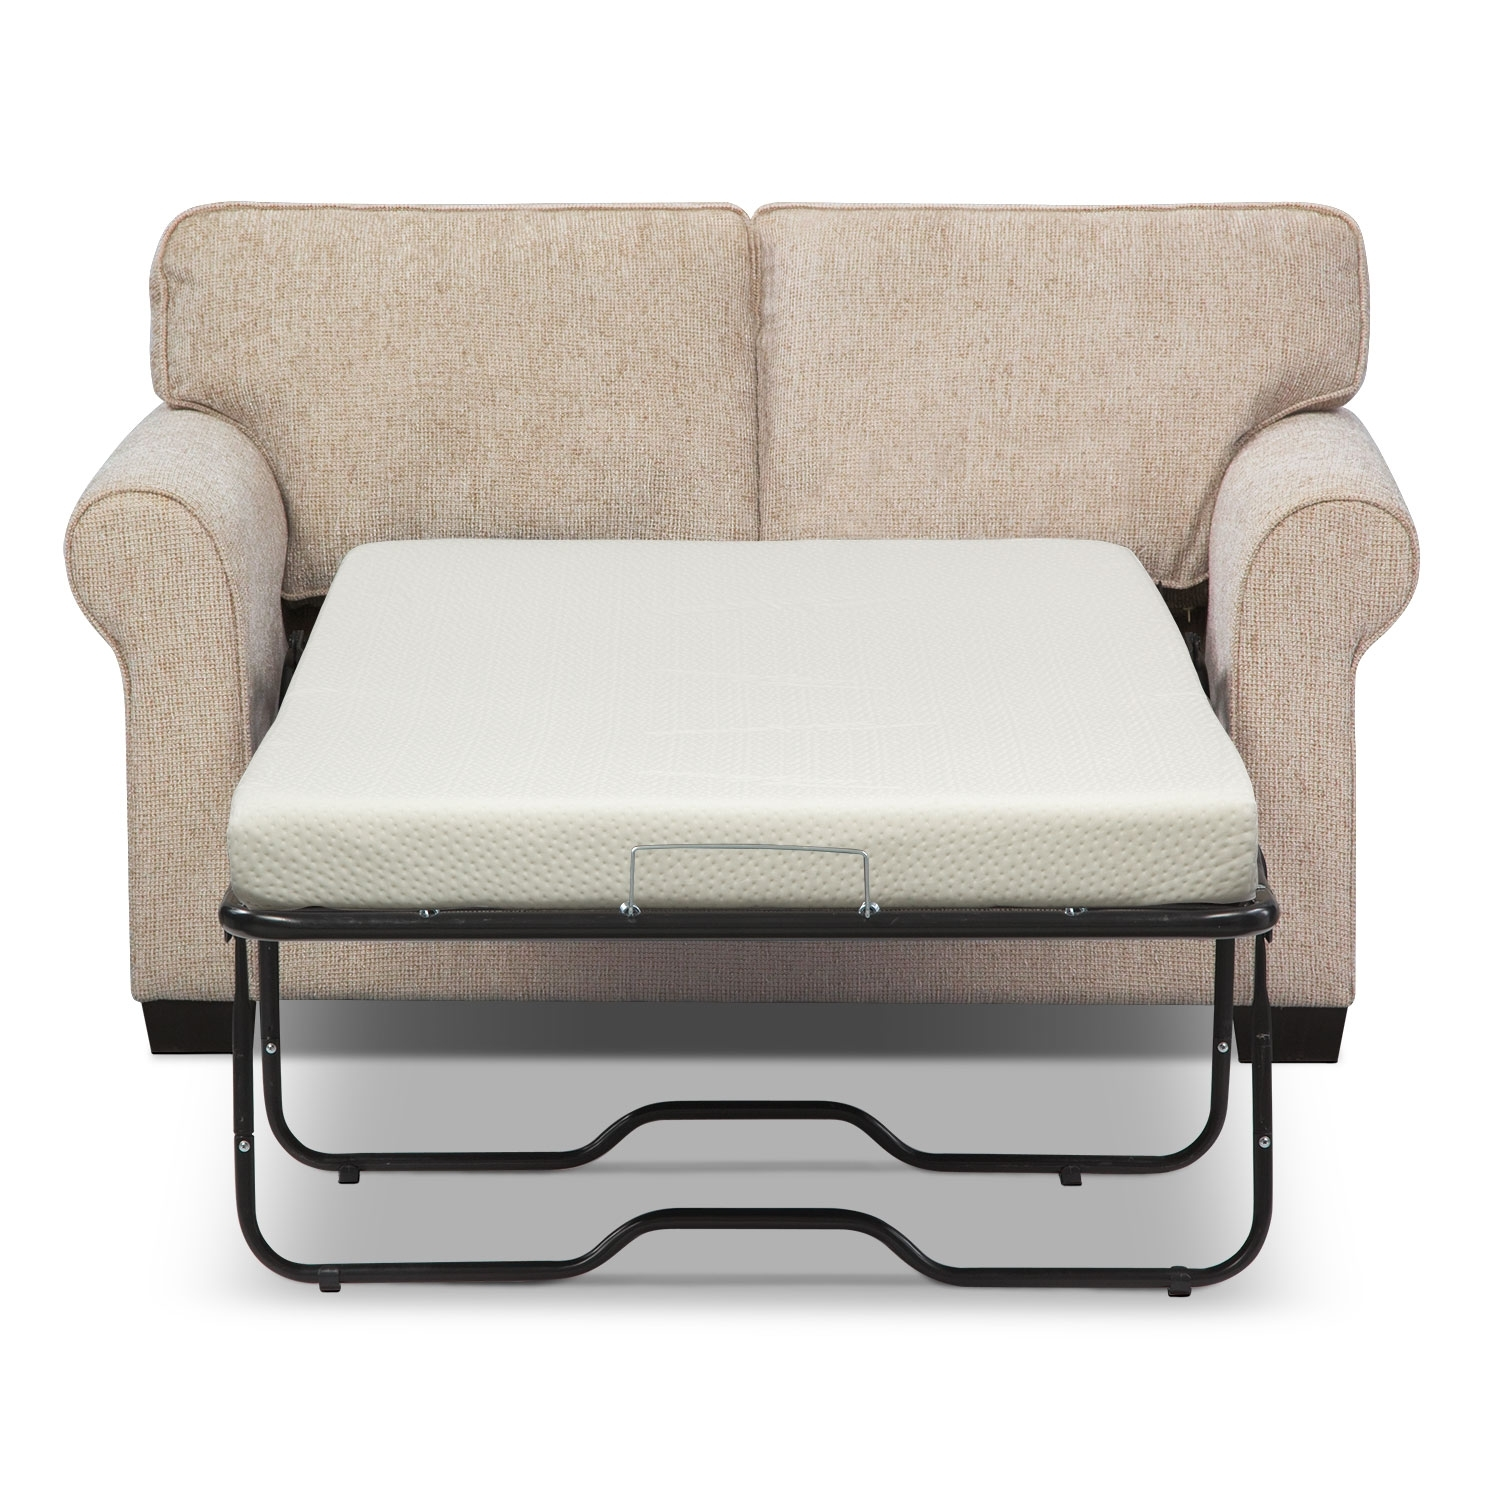 Twin Size Studio Sleeper Chair Home Chair Designs With Regard To Twin Sofa Chairs (Image 15 of 15)